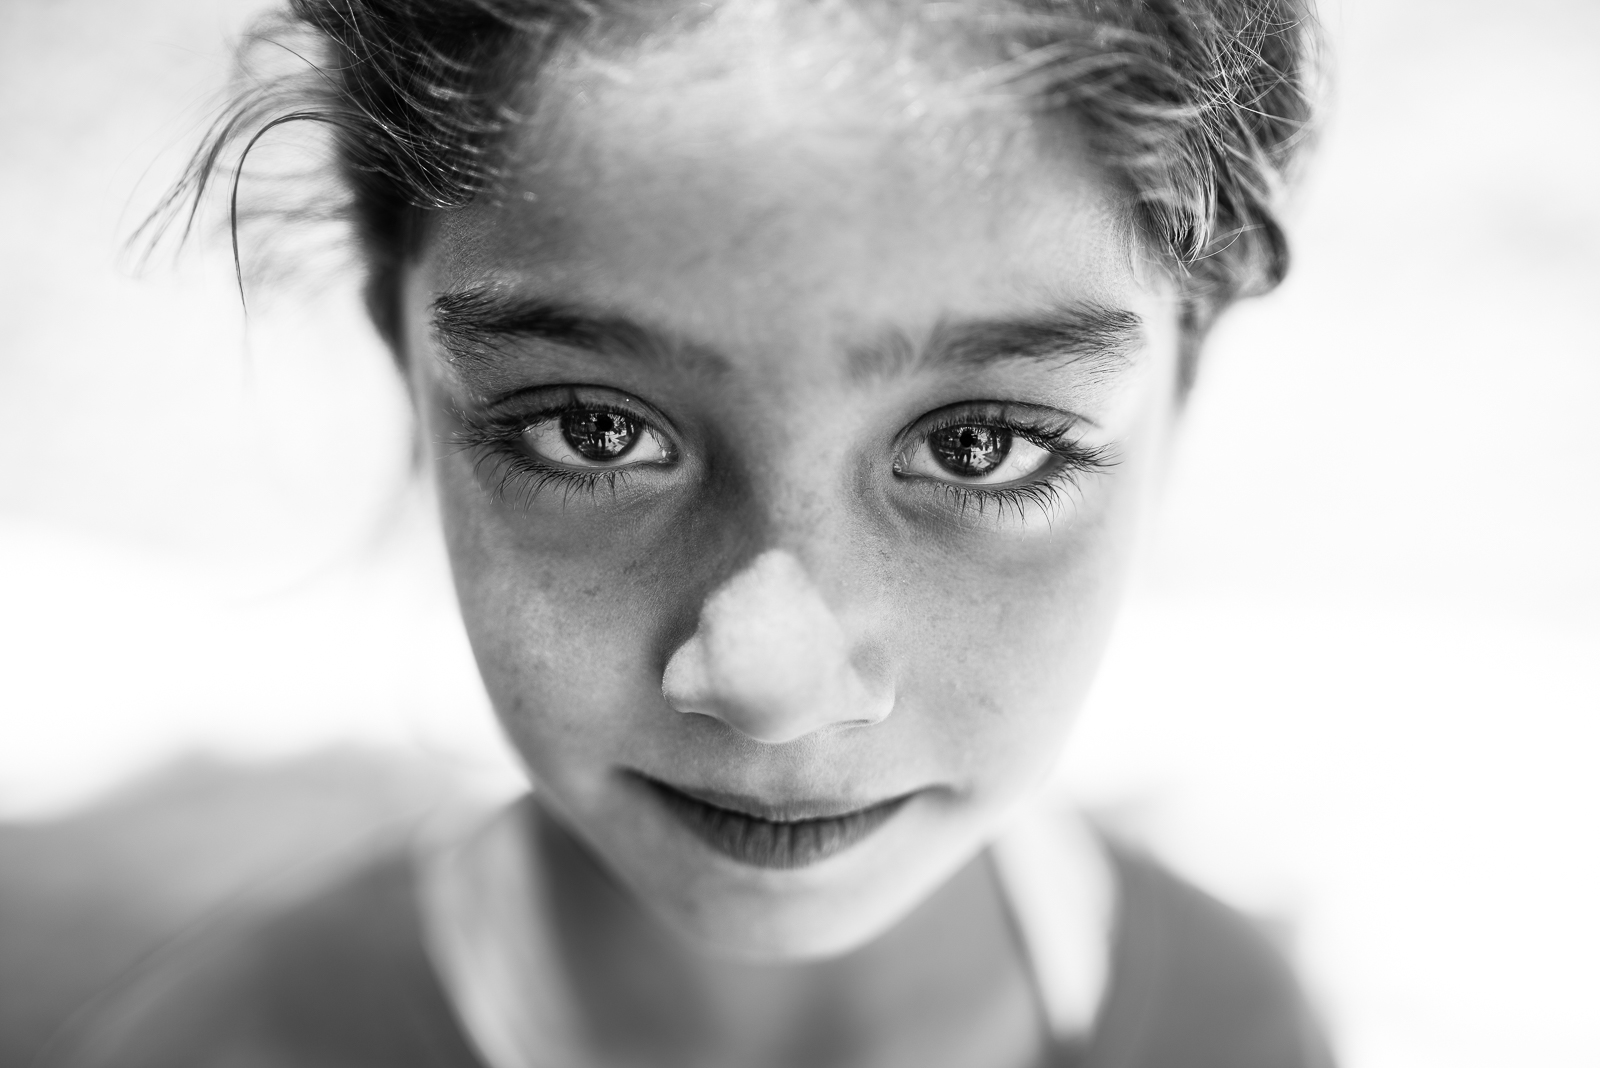 A little girl in the Sanliurfa's halleys. The video of this photo is  here